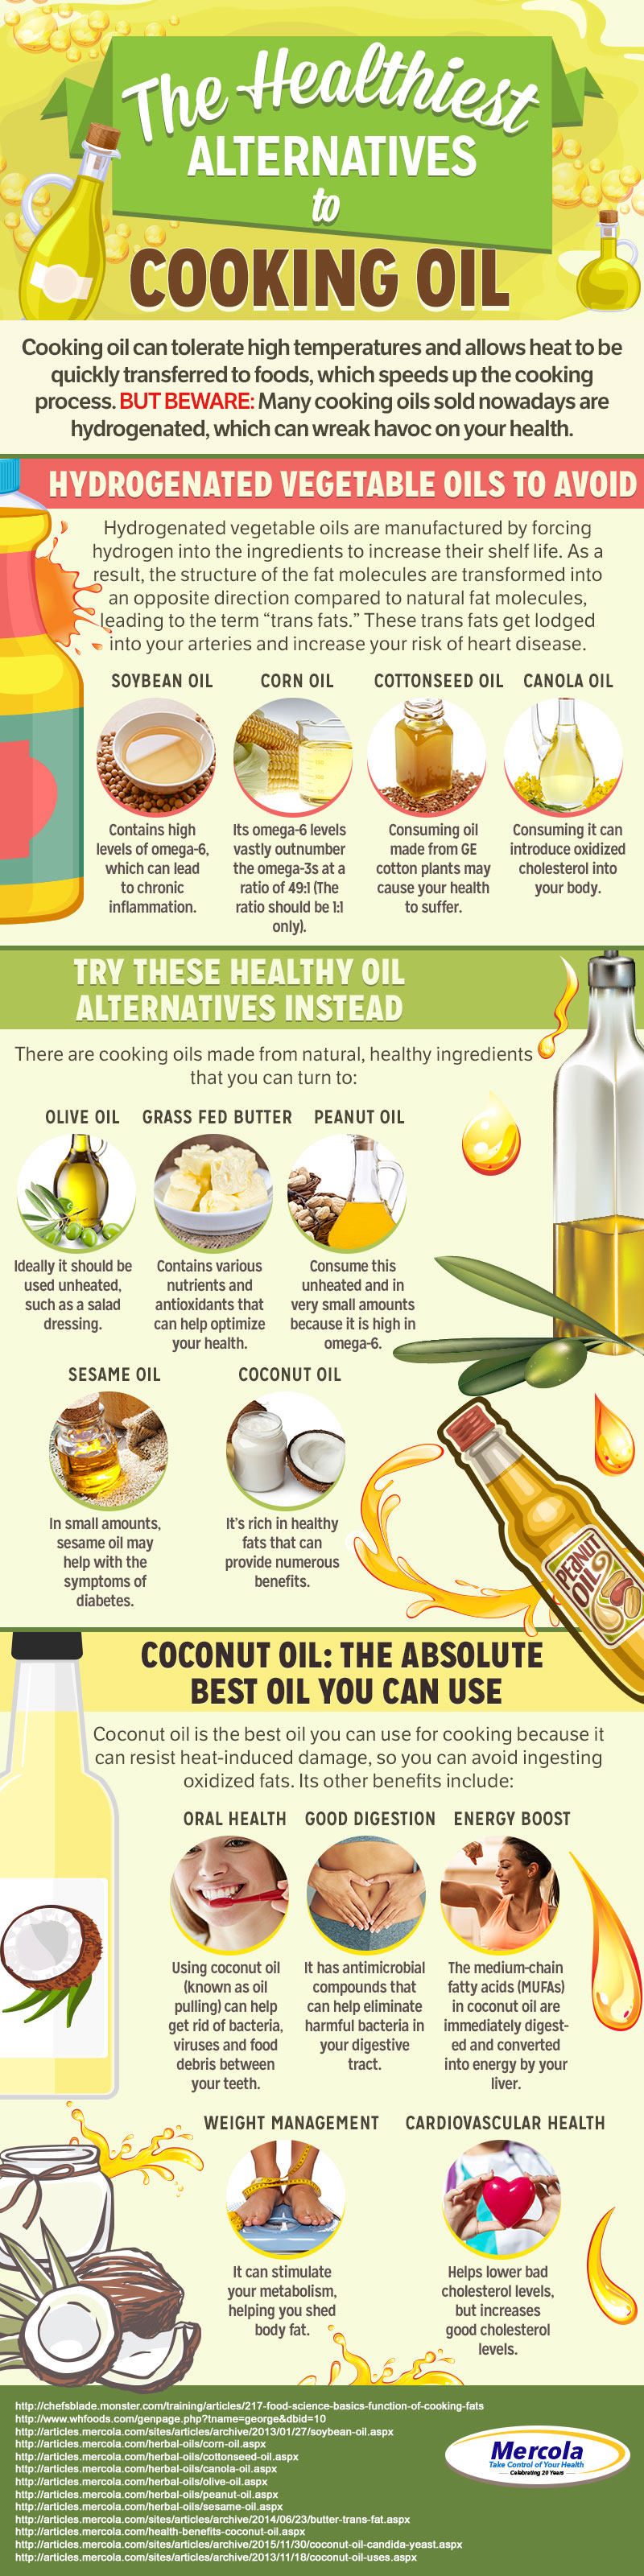 What Is The Healthiest Cooking Oil